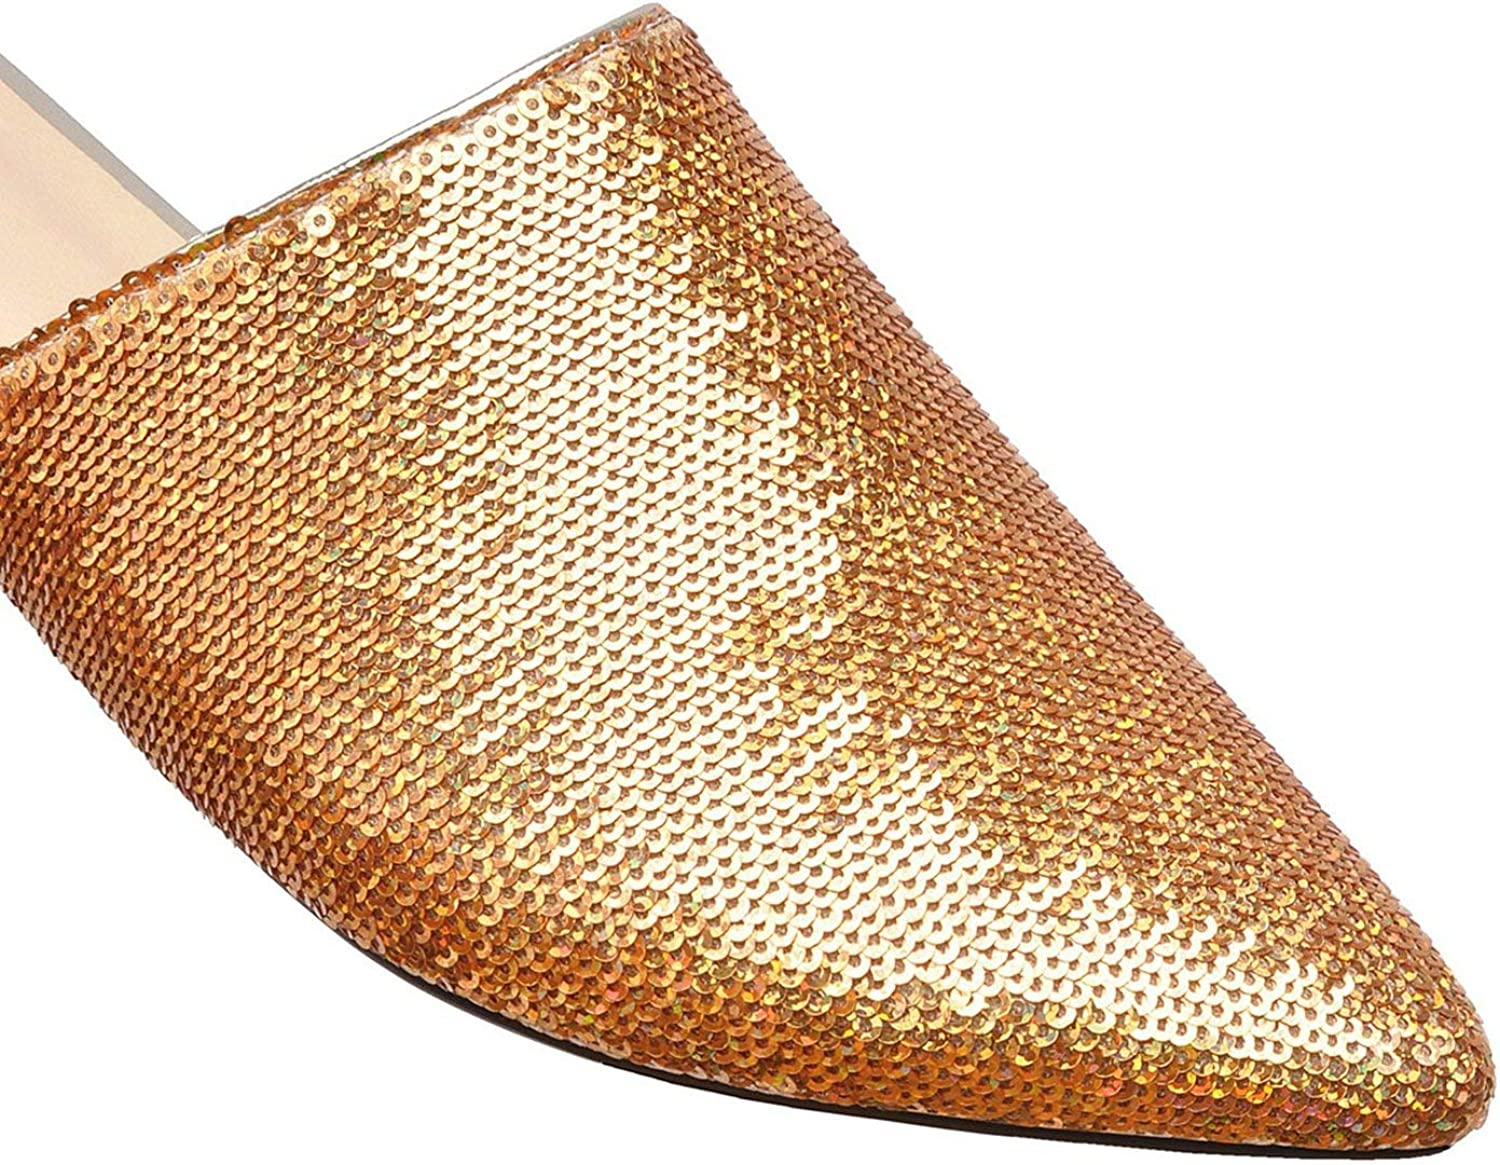 The rest of my life Gold Mules Shoes Women Bling Slippers Pointed Toe Sequined Cloth Flat Loafers Shiny Women Shoes Size 45 46 47 48,Black,11